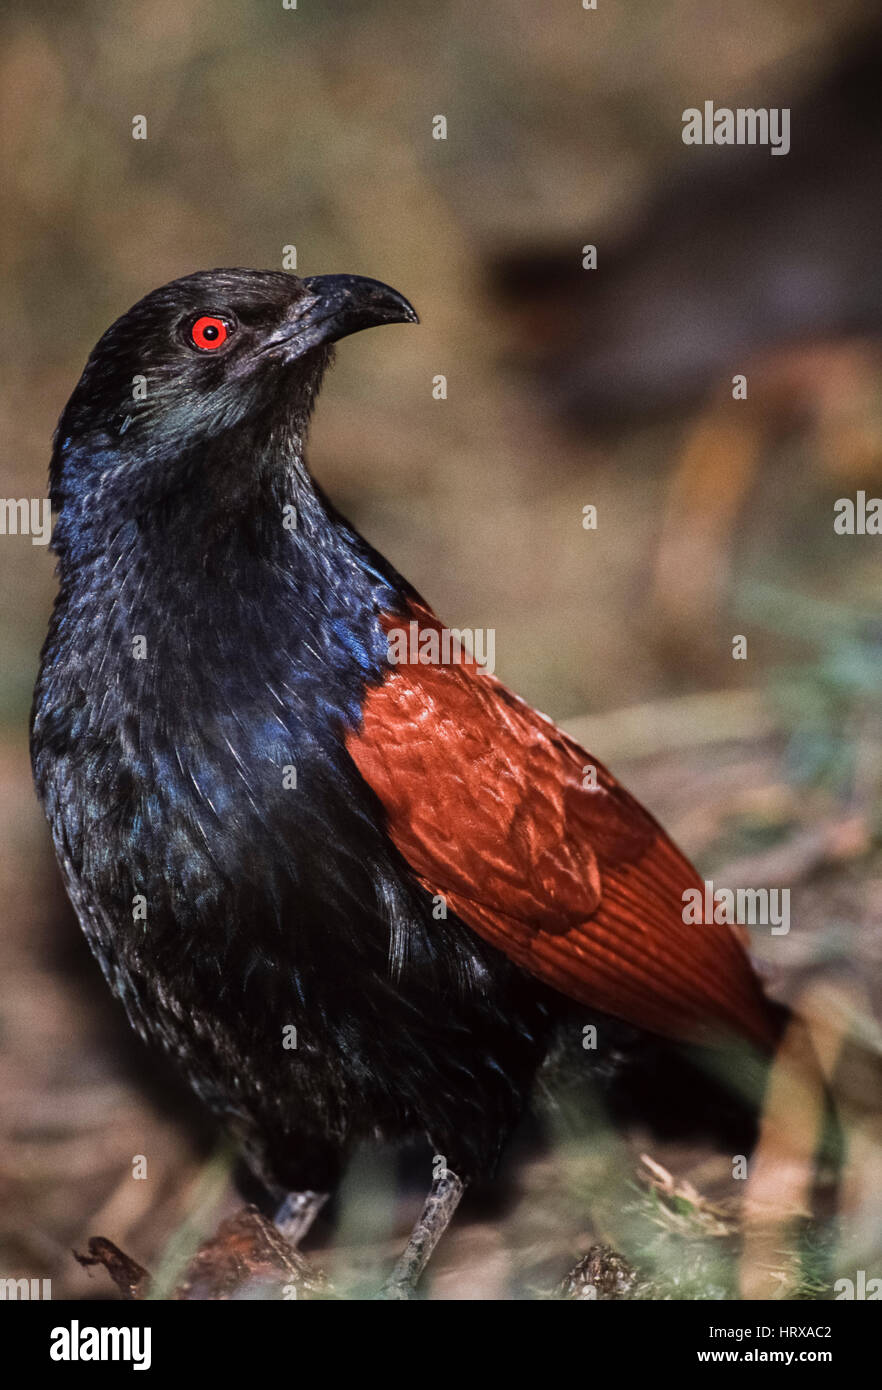 Greater Coucal or Crow Pheasant,(Centropus sinensis), Keoladeo Ghana National Park, Bharatpur, Rajasthan, India - Stock Image